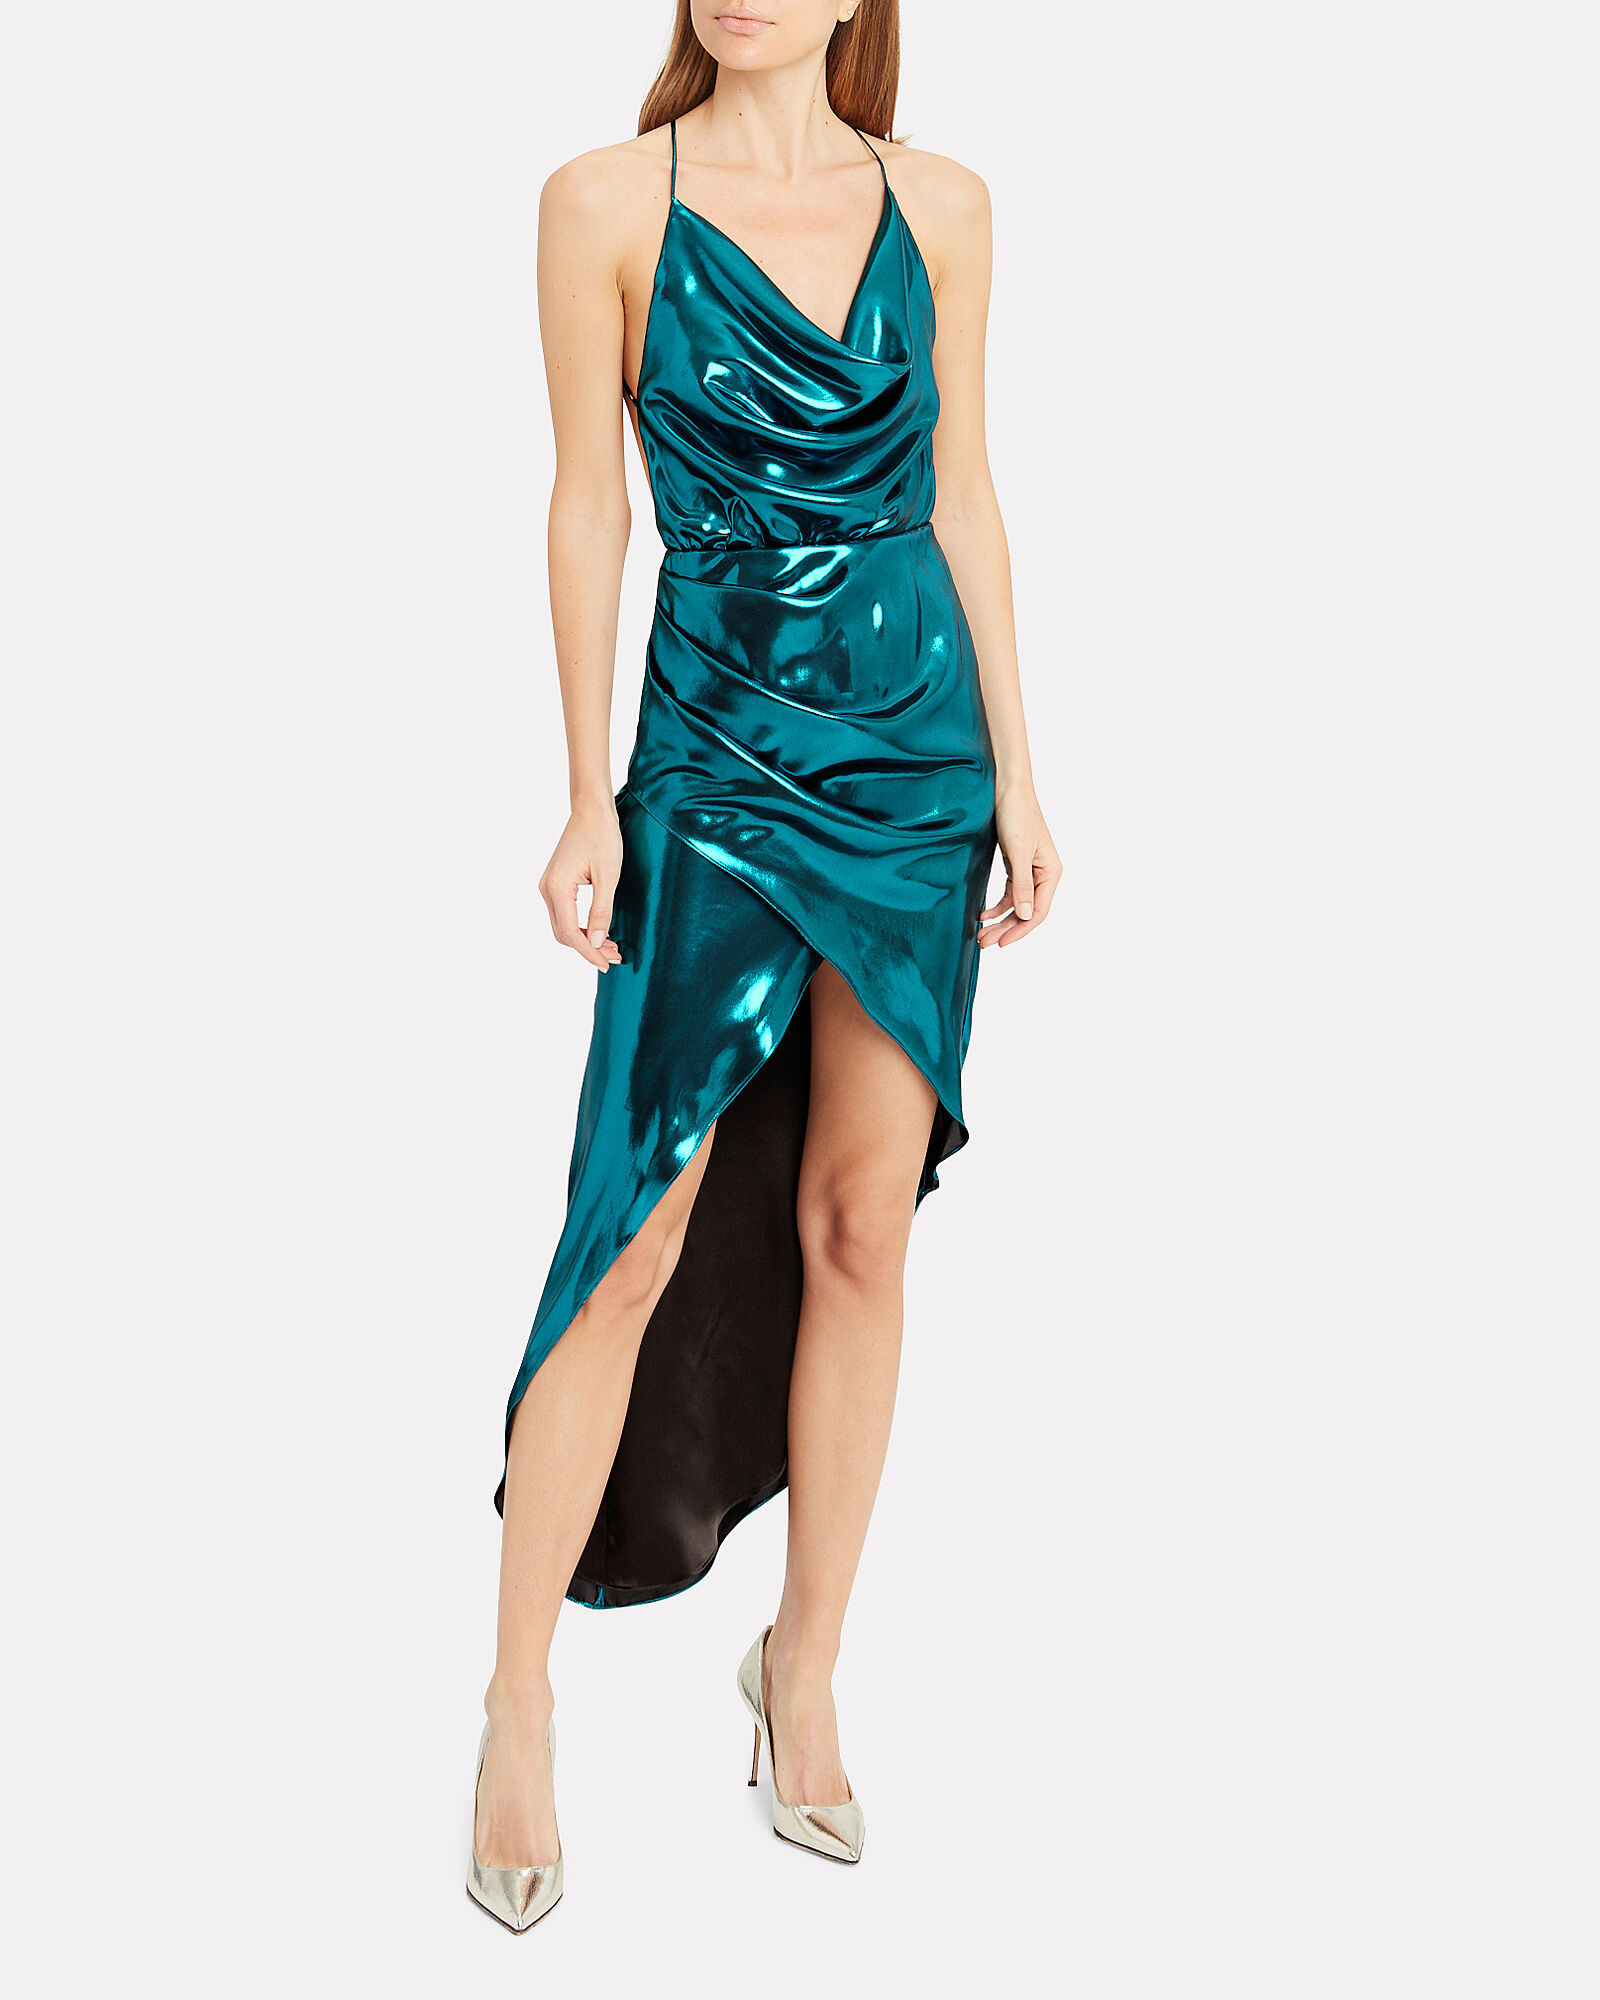 Cowl Neck Metallic Blue Dress, BLUE-MED, hi-res